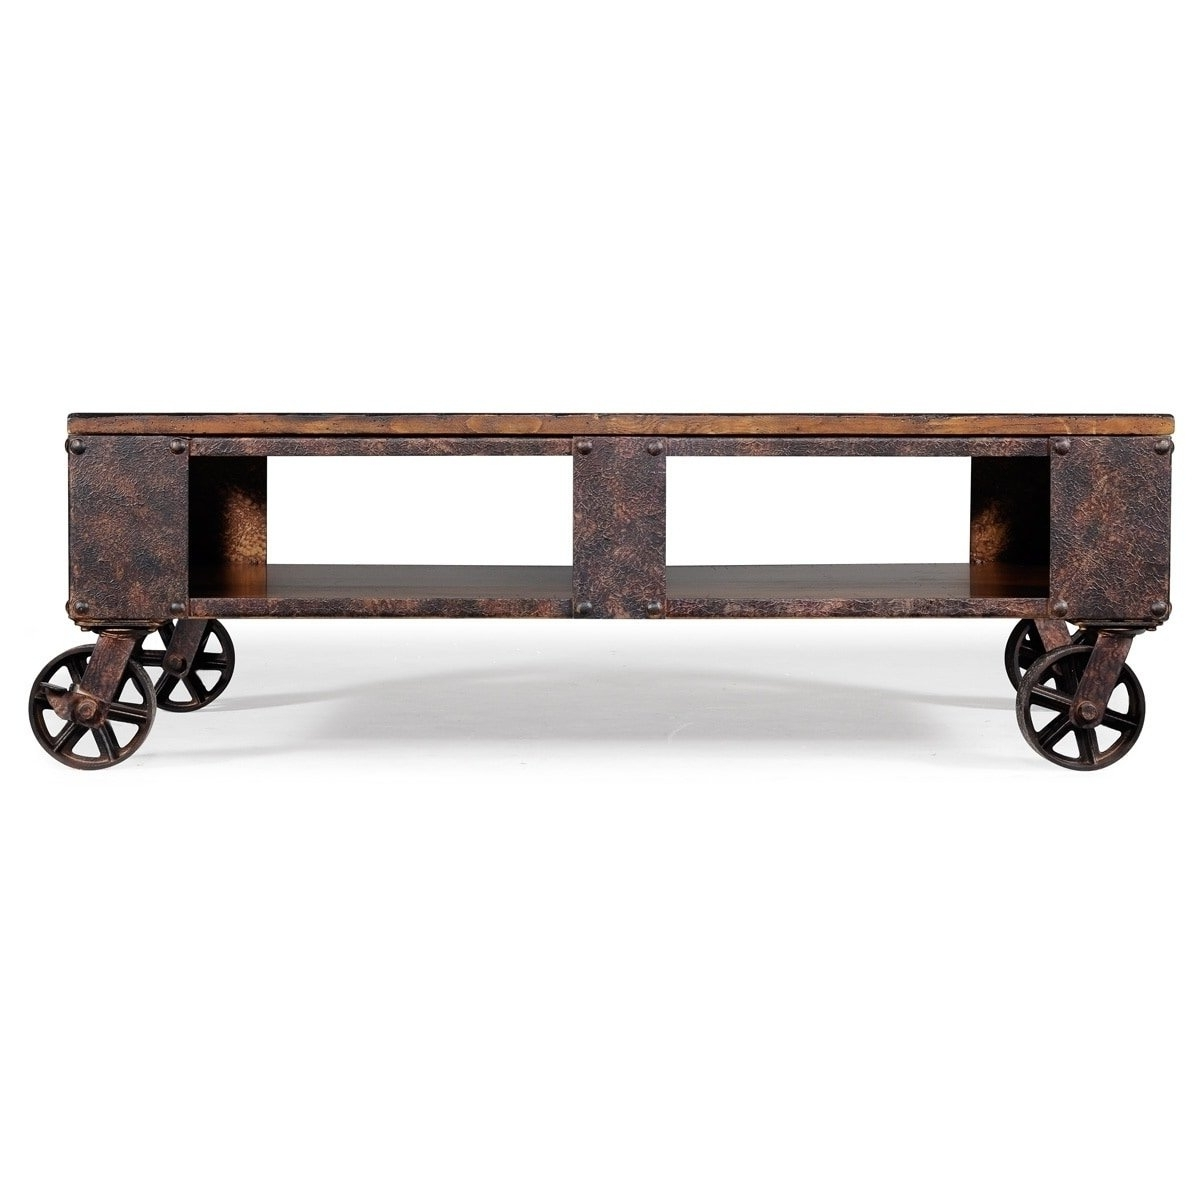 Shop Pine Canopy Canova Distressed Pine Wood Coffee Table On Casters Throughout Most Up To Date Natural Pine Coffee Tables (View 19 of 20)